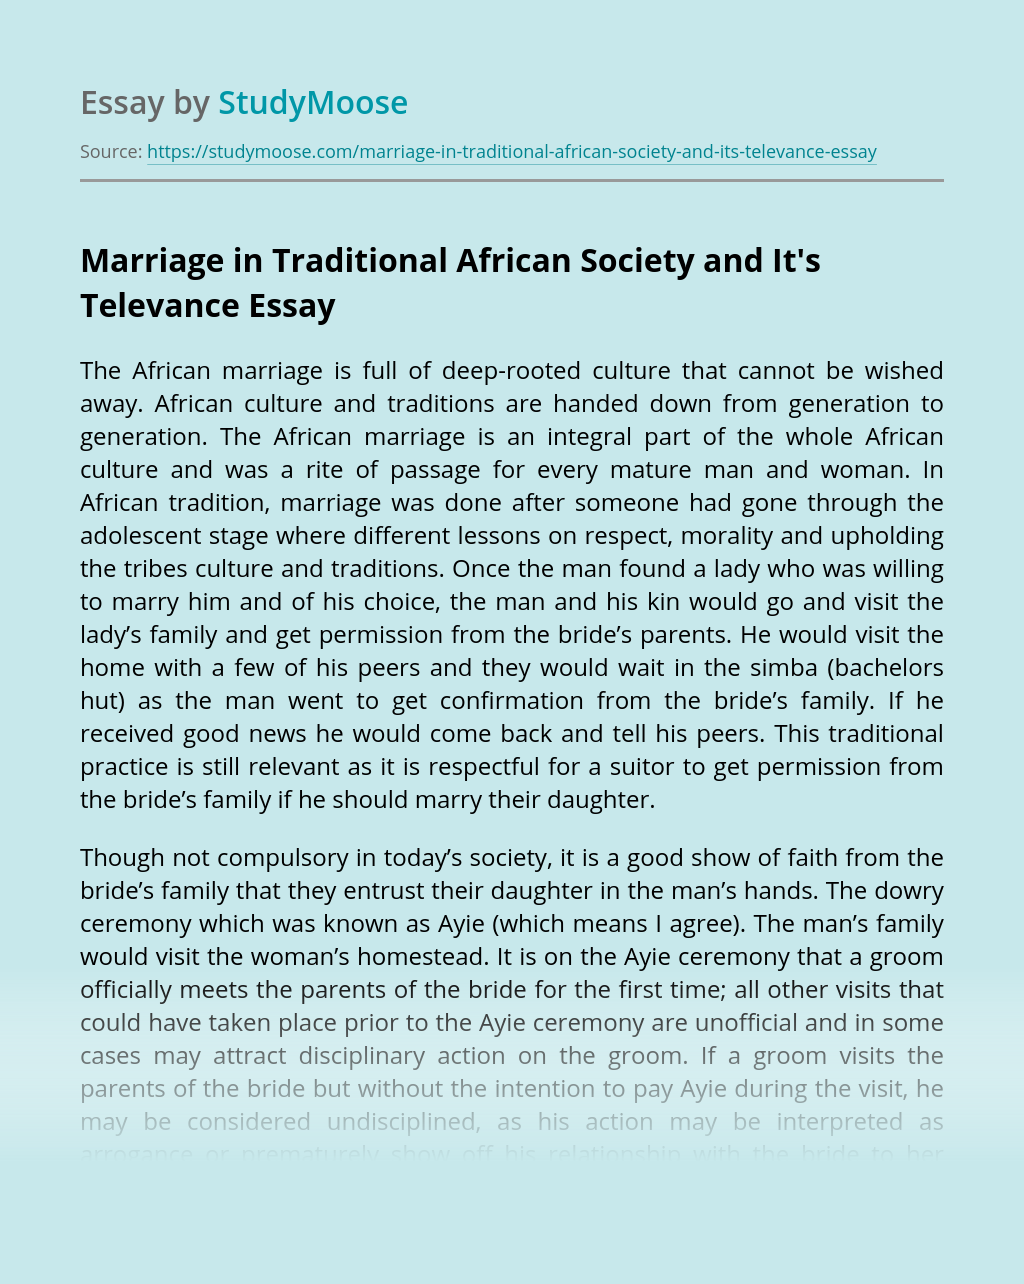 Marriage in Traditional African Society and It's Televance